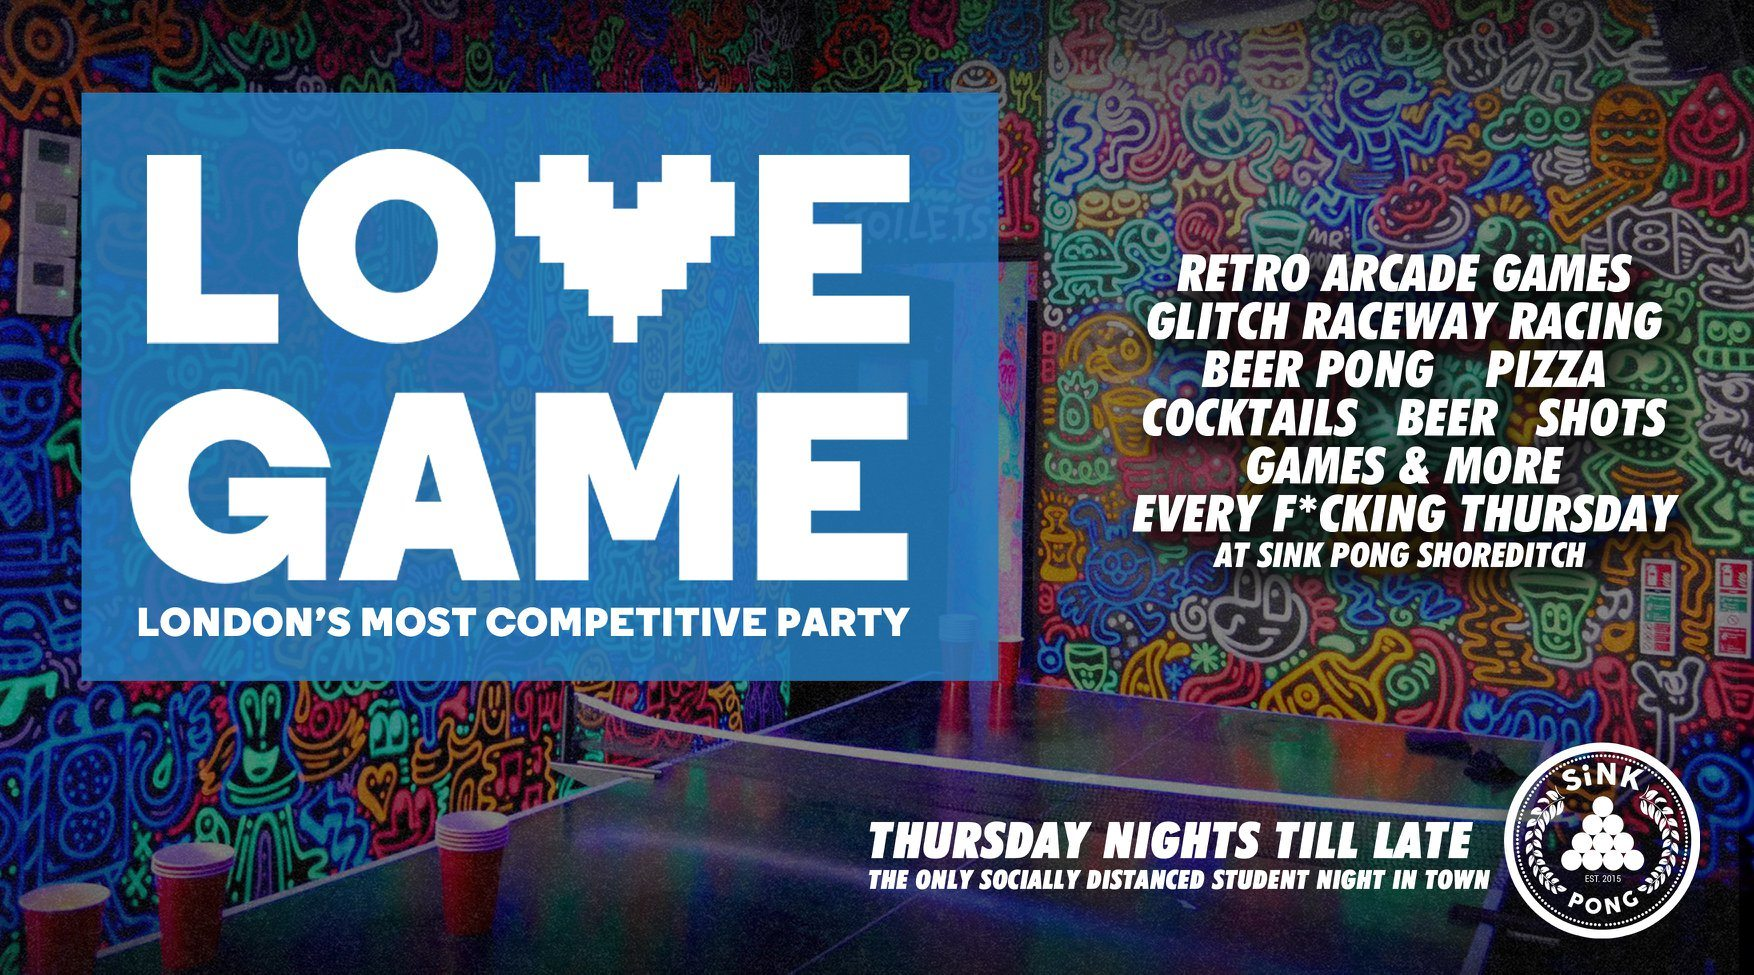 LOVE GAME ❤️London's Most Competitive Party 👾at Sink Pong Shoreditch at  SiNK PONG, London on 8th Oct 2020 | Fatsoma